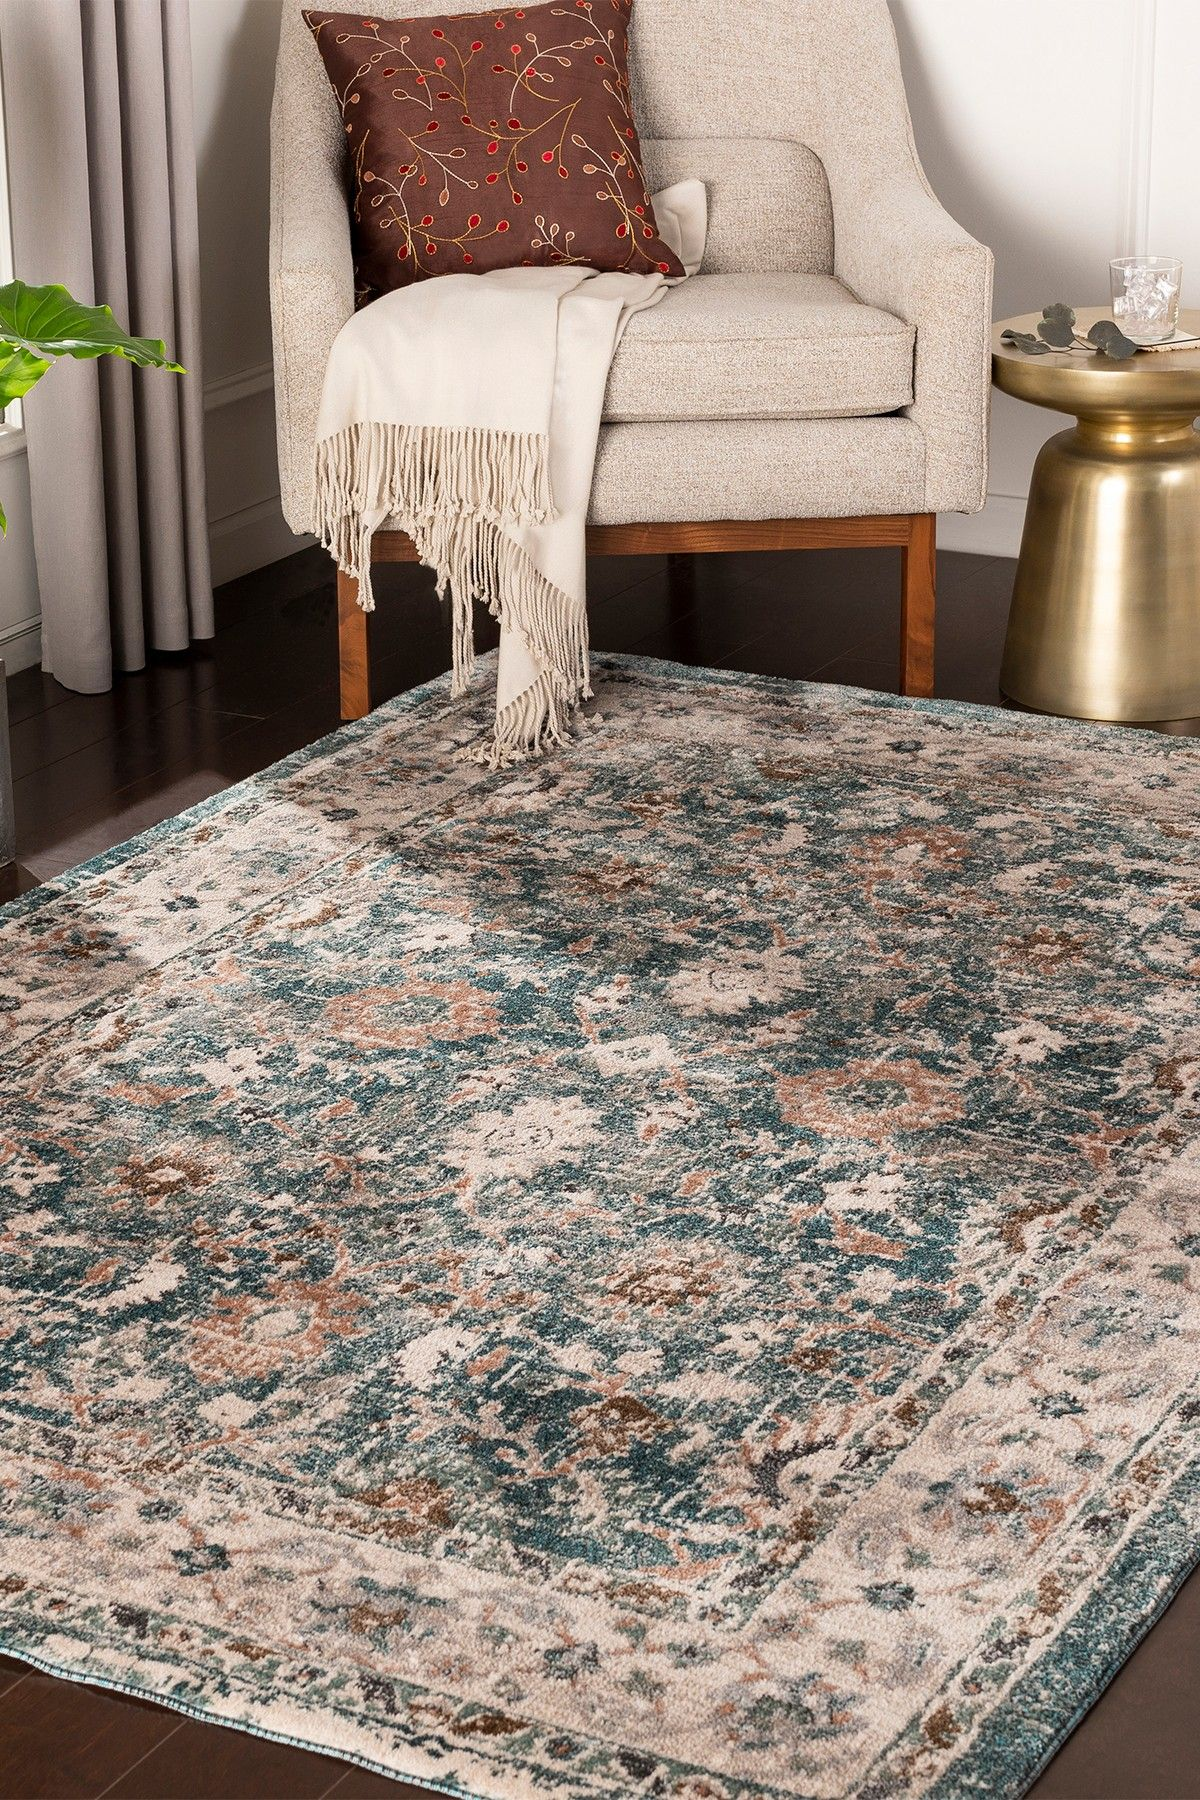 Surya Home Soft Touch Rug Multi Is Now 40 43 Off Free Shipping On Orders Over 100 Living Room Little Farm City Rugs Animal Print Rug Home Decor